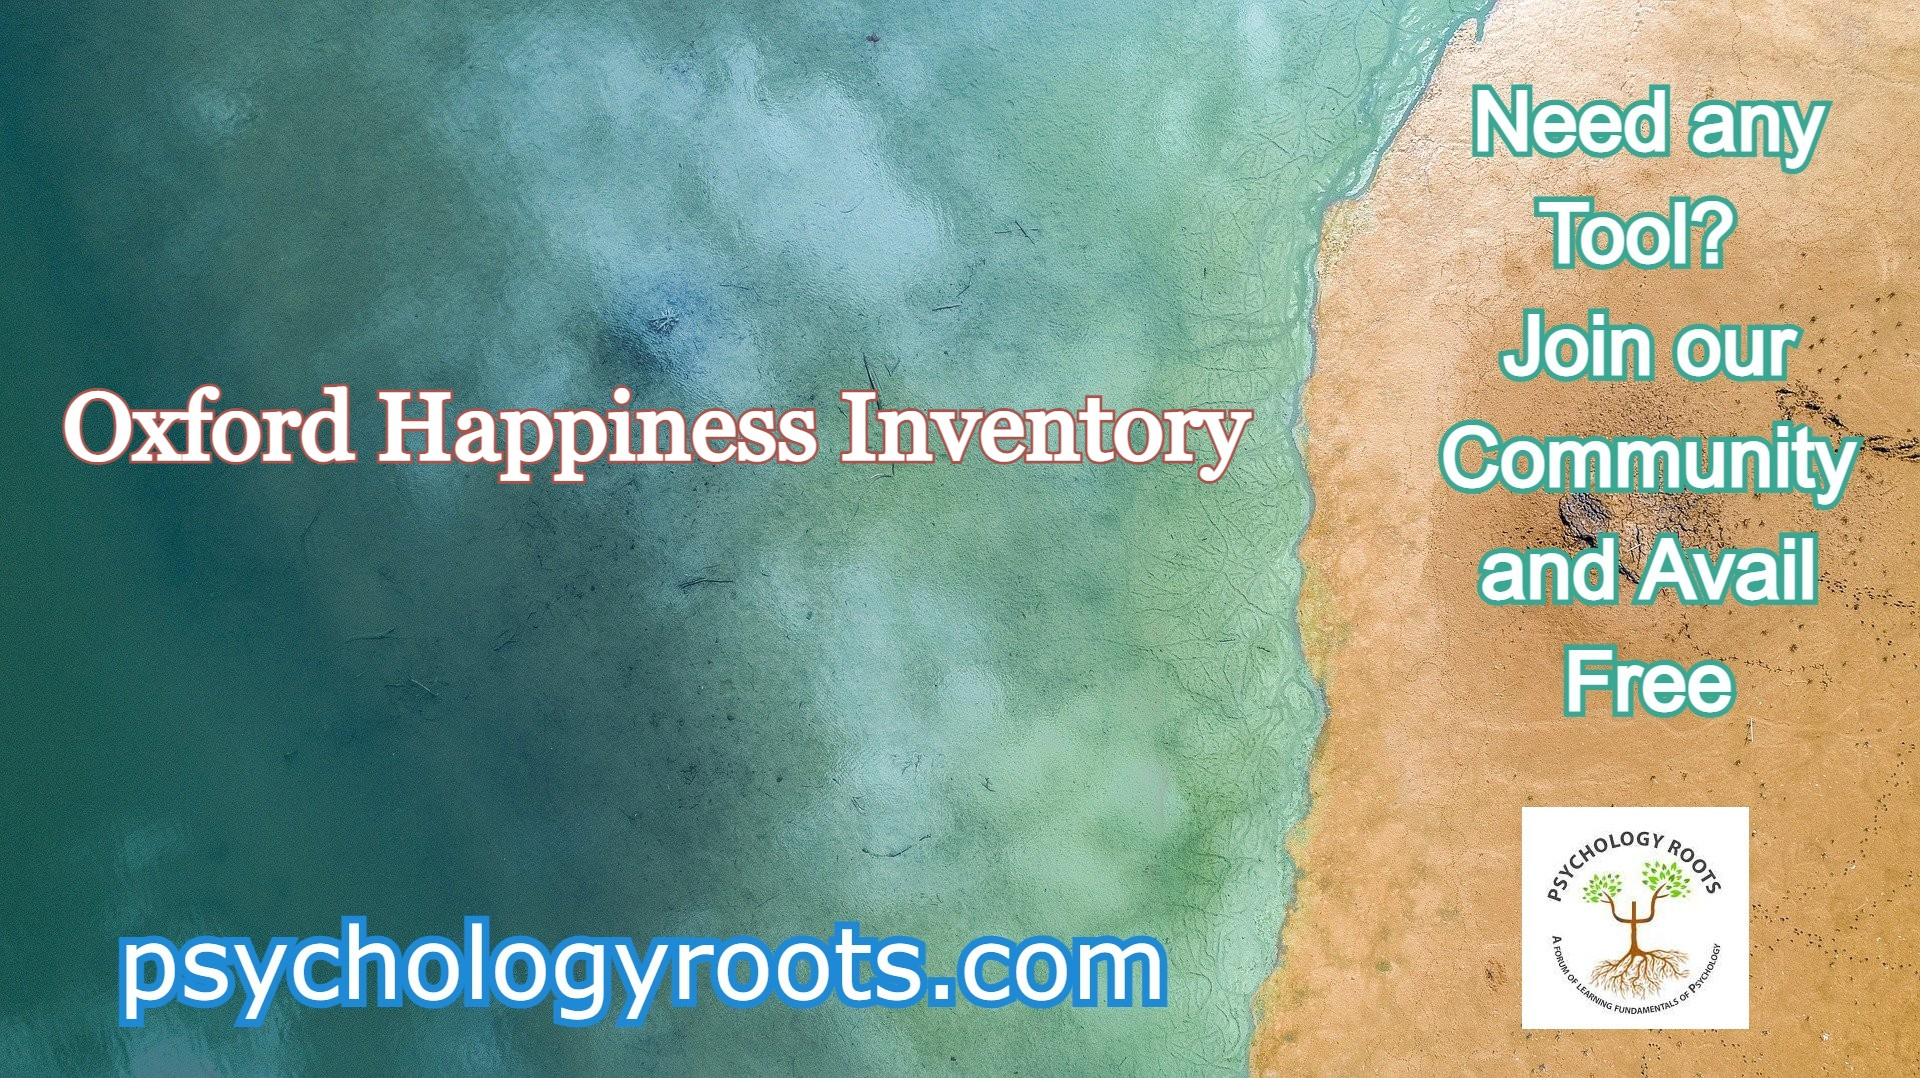 Oxford Happiness Inventory